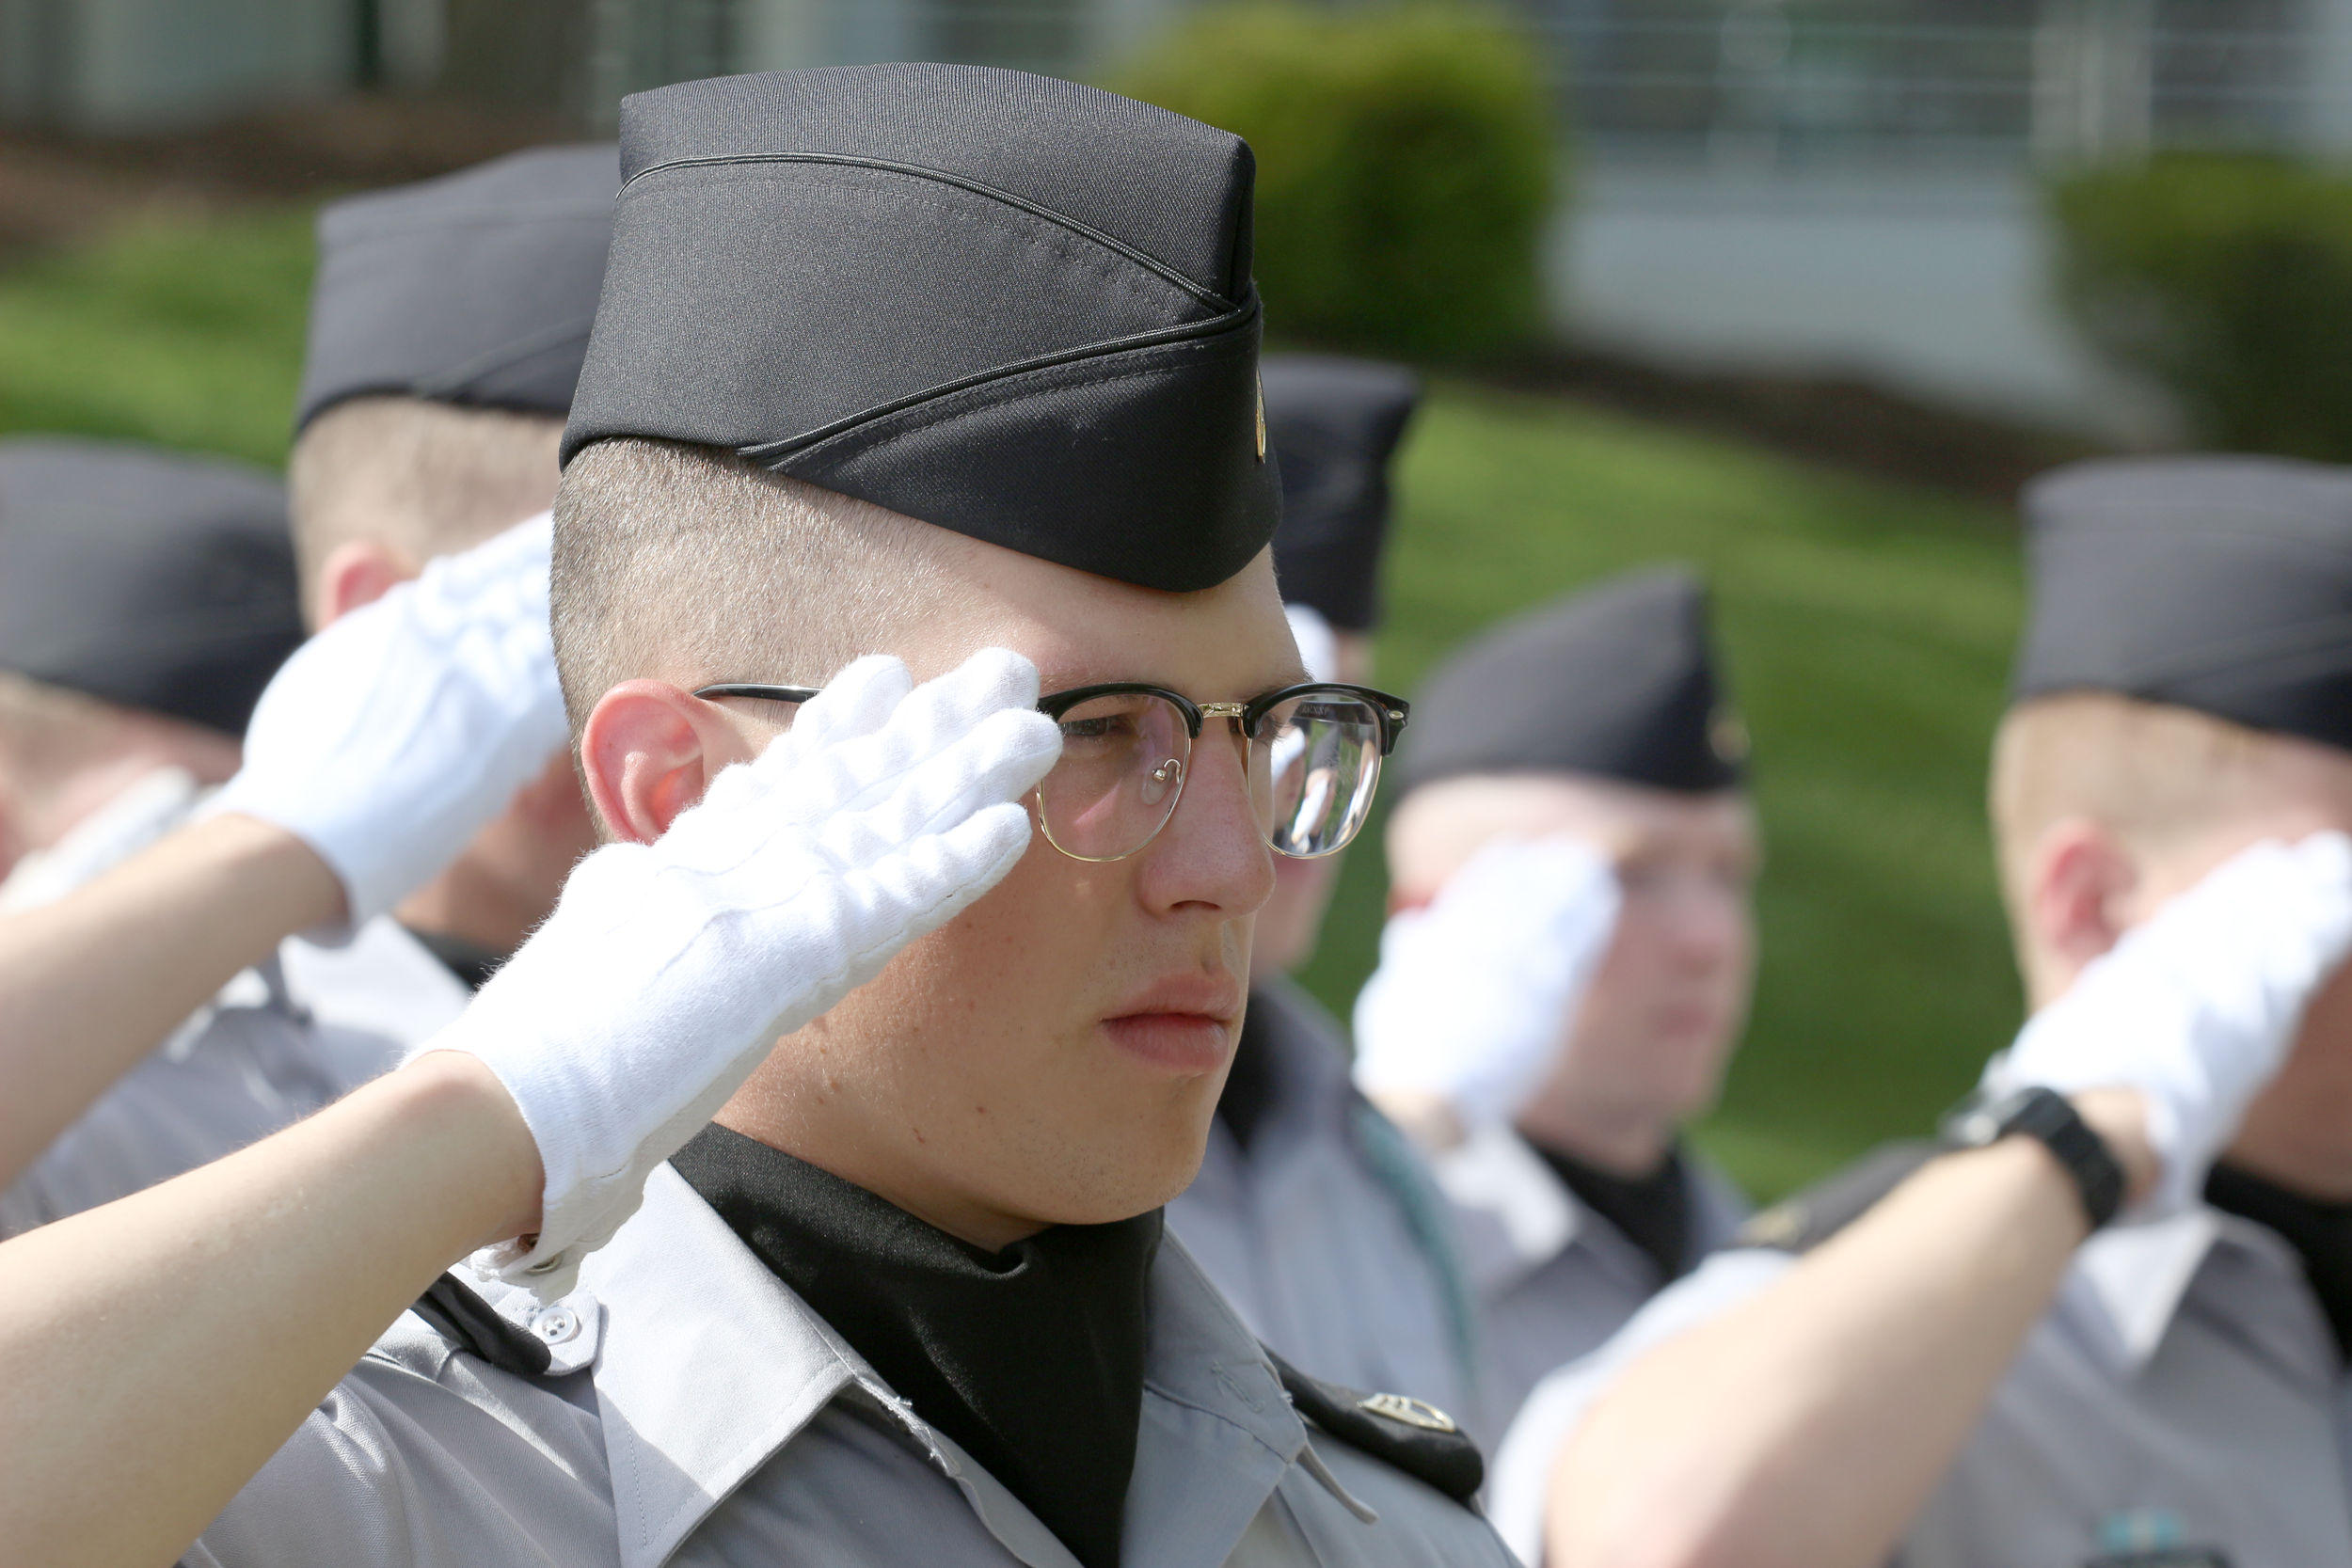 Eagle Fund endowed scholarship - Support deserving cadets of high moral character who are pursuing a commission in the U.S. Armed Forces.